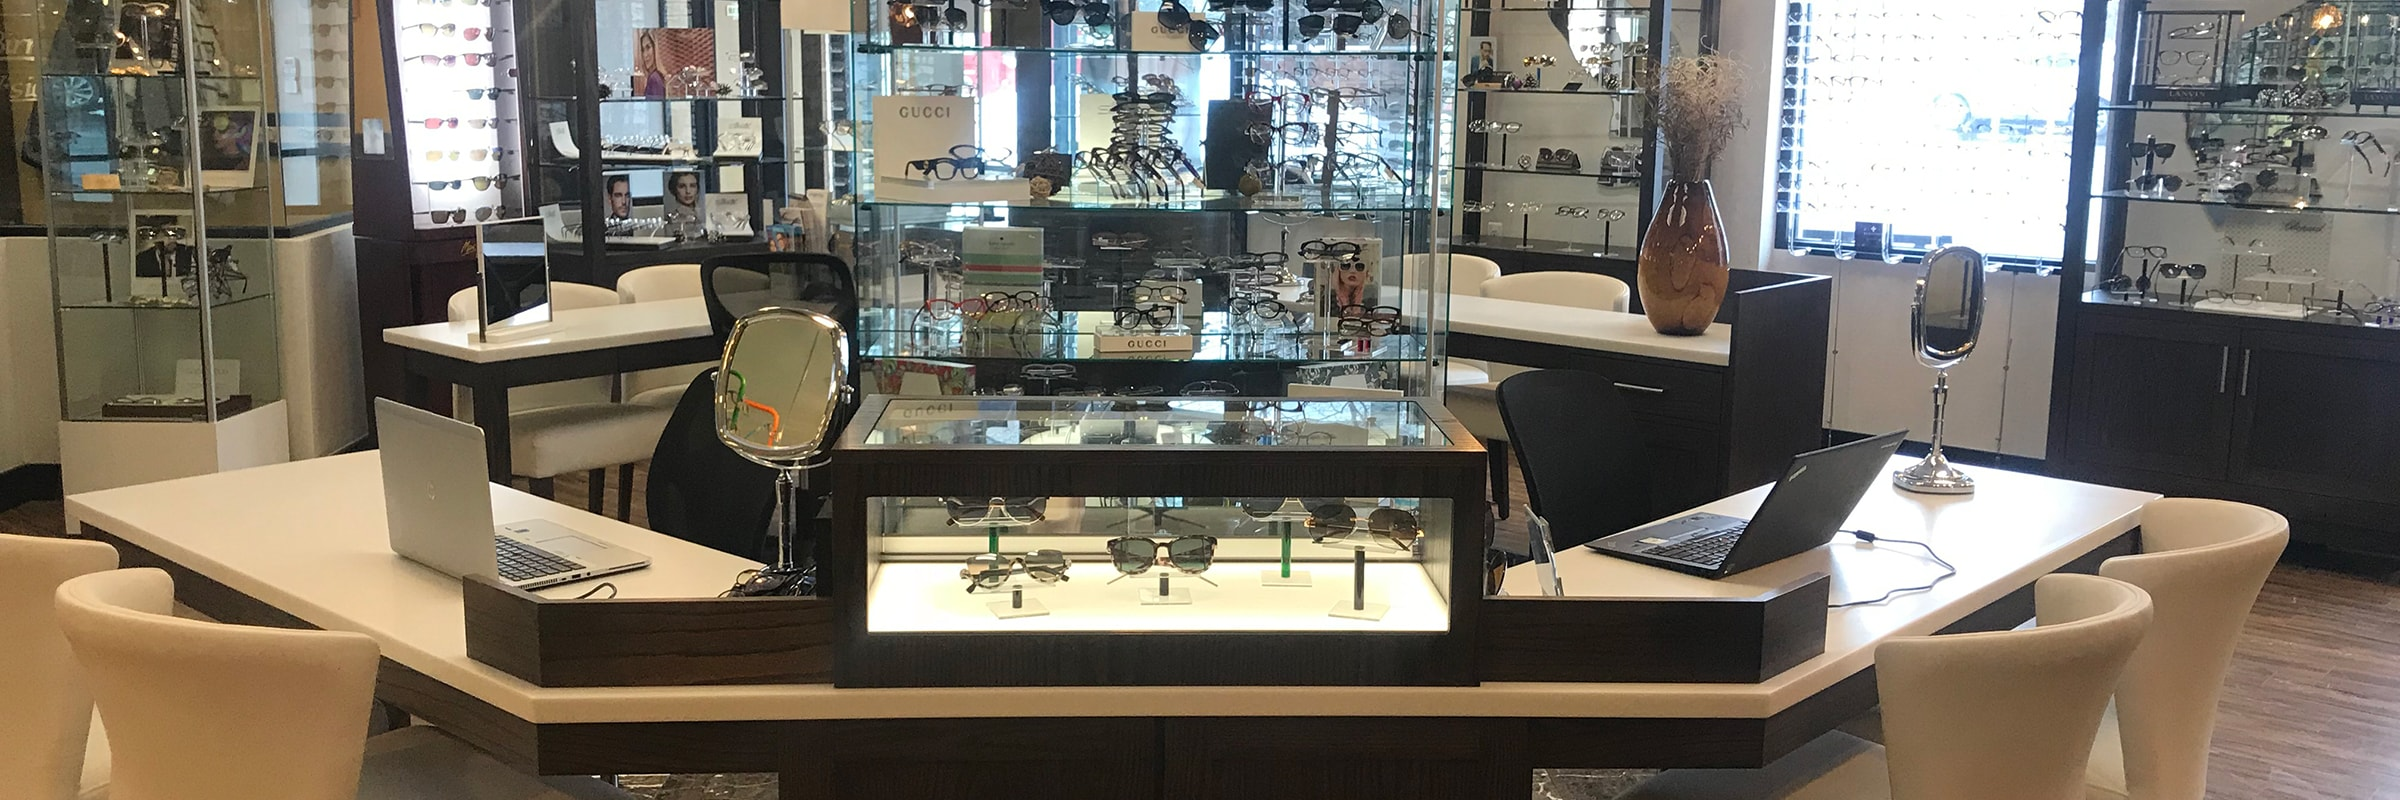 Birmingham Vision Care front office and glasses displays.